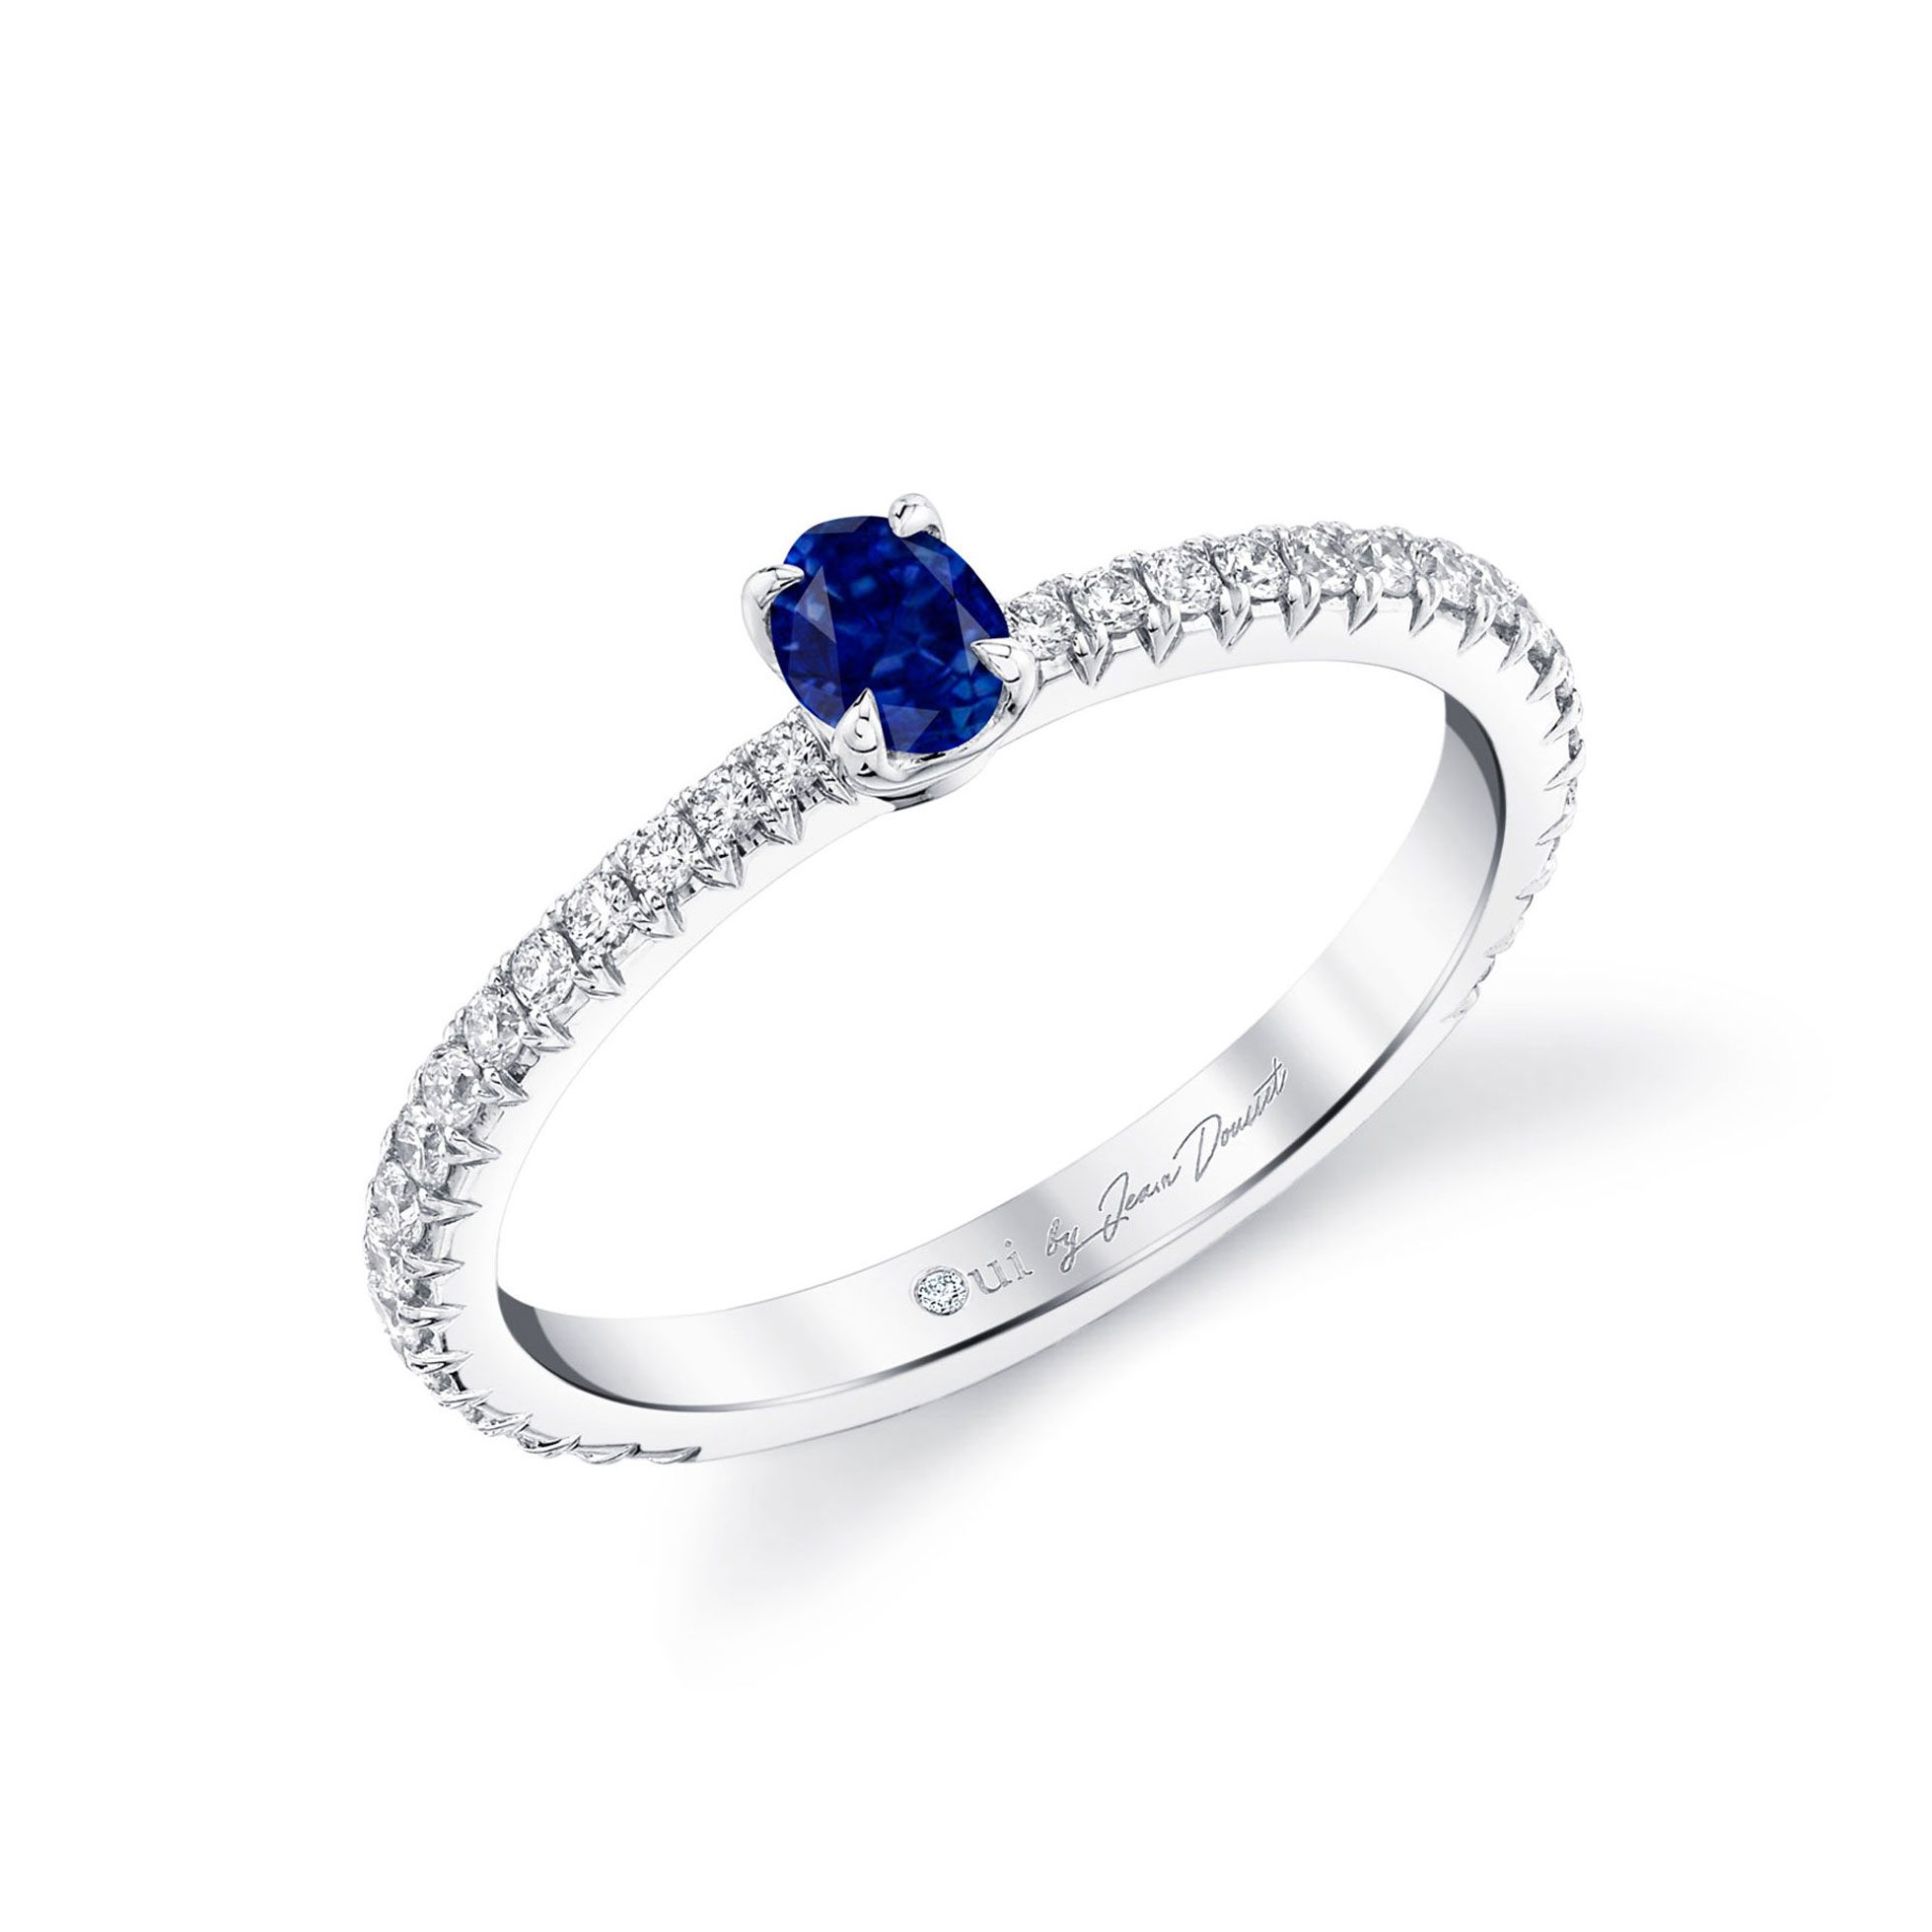 La Petite Oval Blue Sapphire Ring diamond pavé band in 18k White Gold Profile View by Oui by Jean Dousset